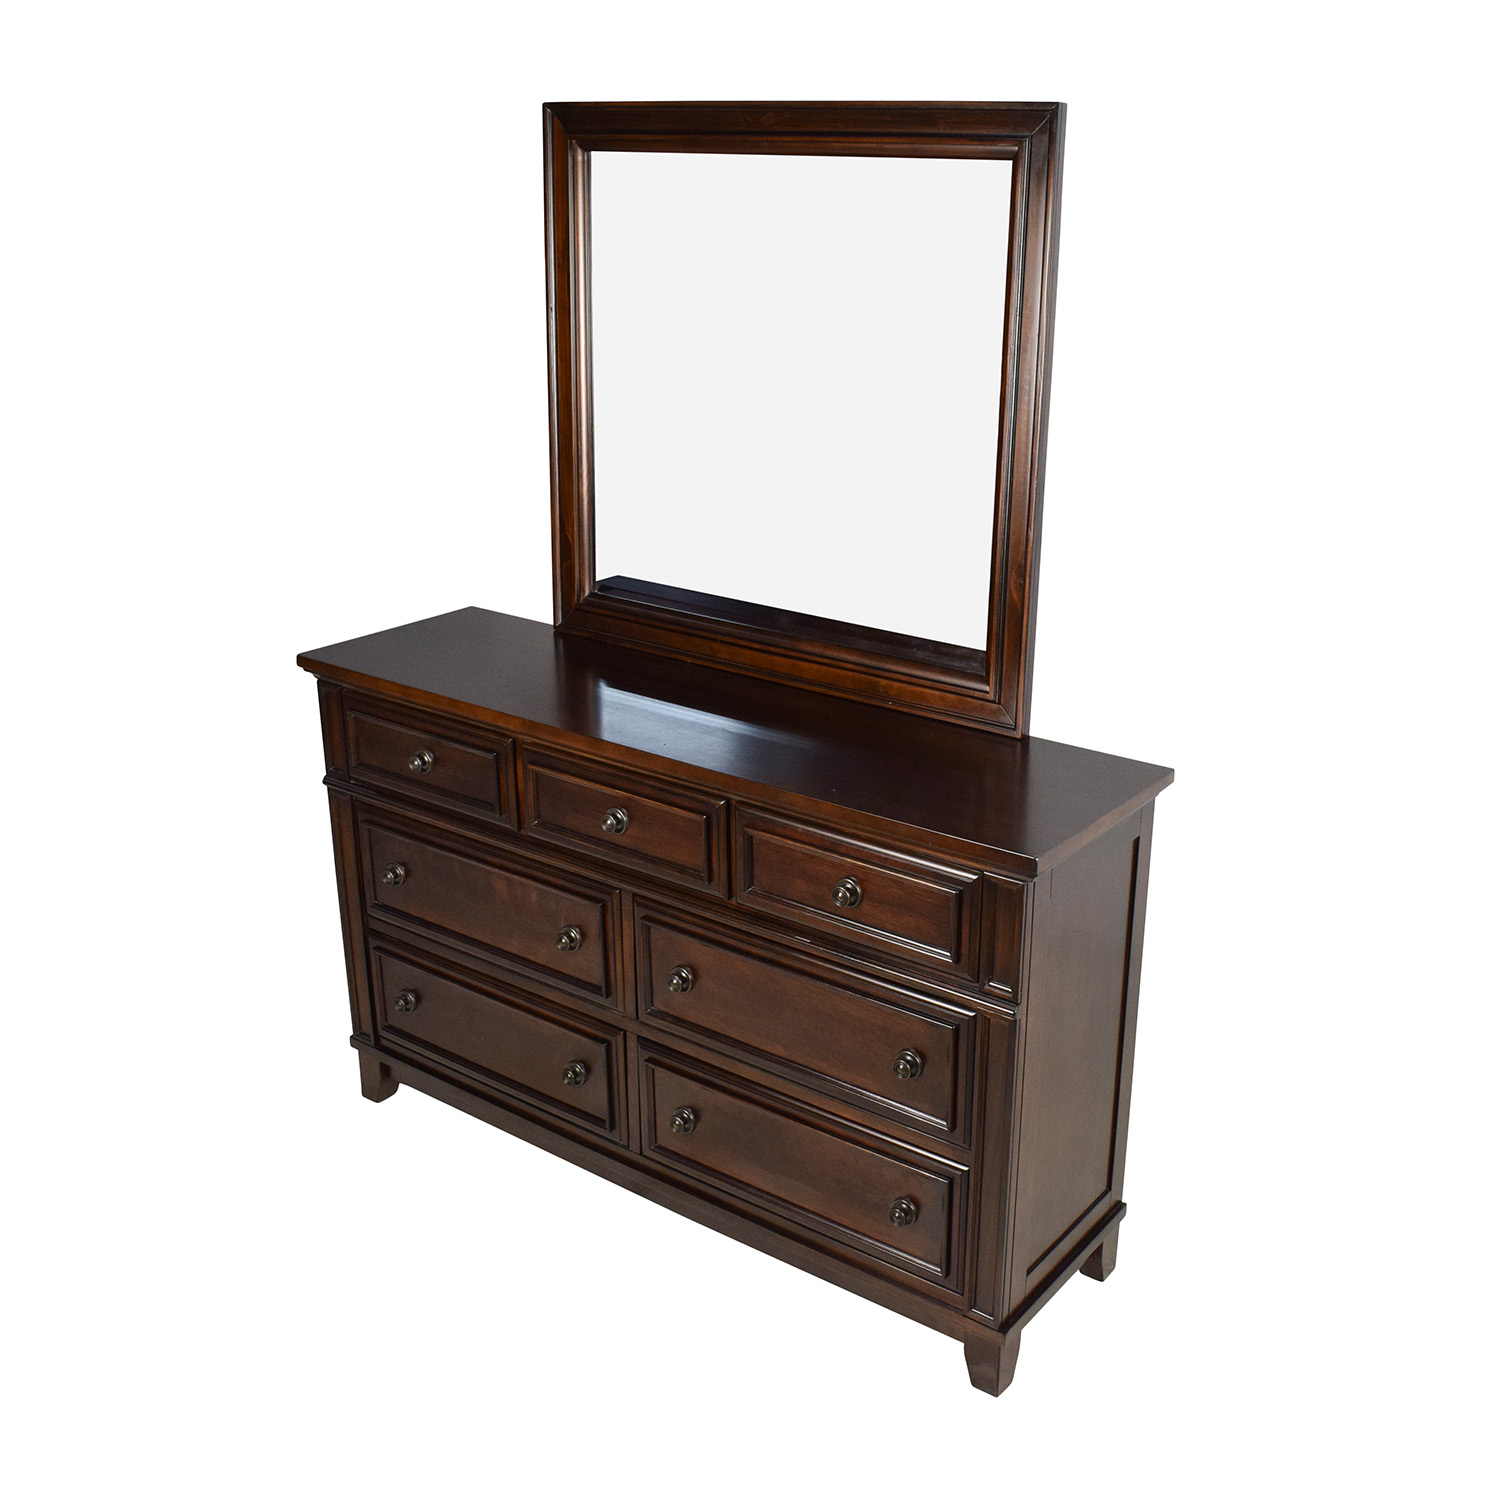 shop Harwich Cherry Harwich Cherry 7-Drawer Dresser and Mirror online